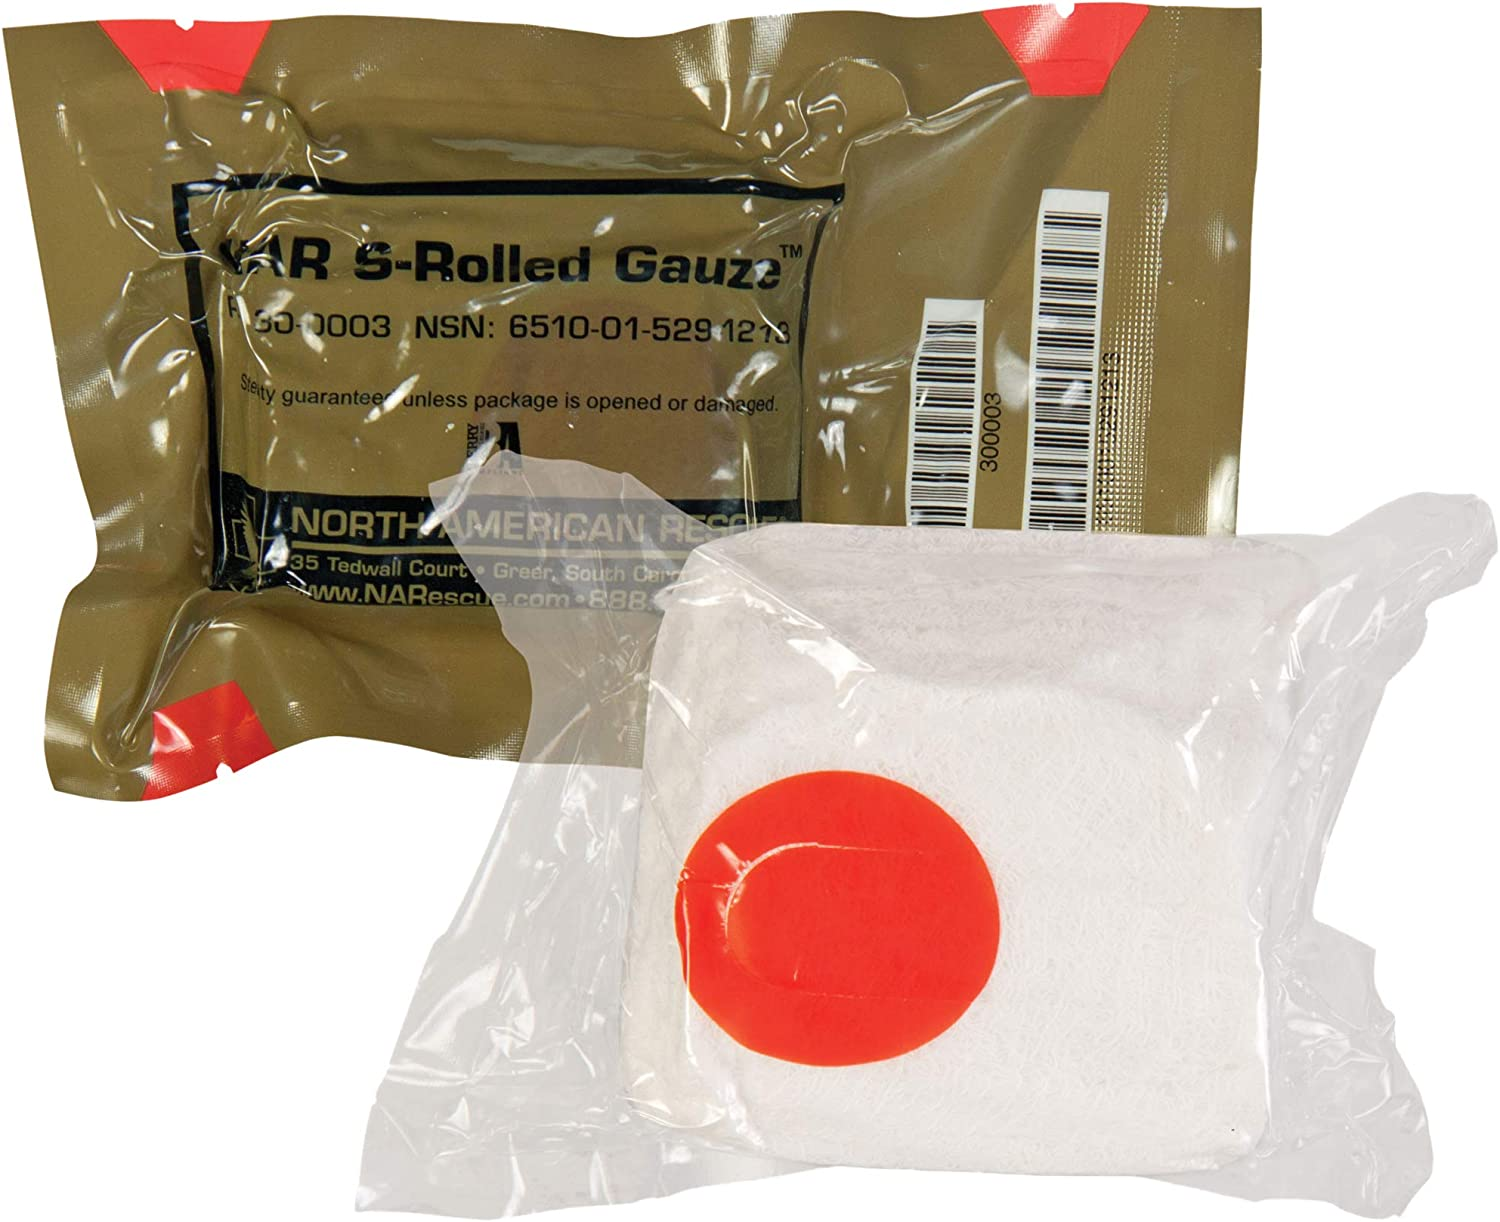 North American Rescue 30-0003 Medical S-Rolled - 4. Limited time for free shipping Gauze Max 89% OFF x 4.5